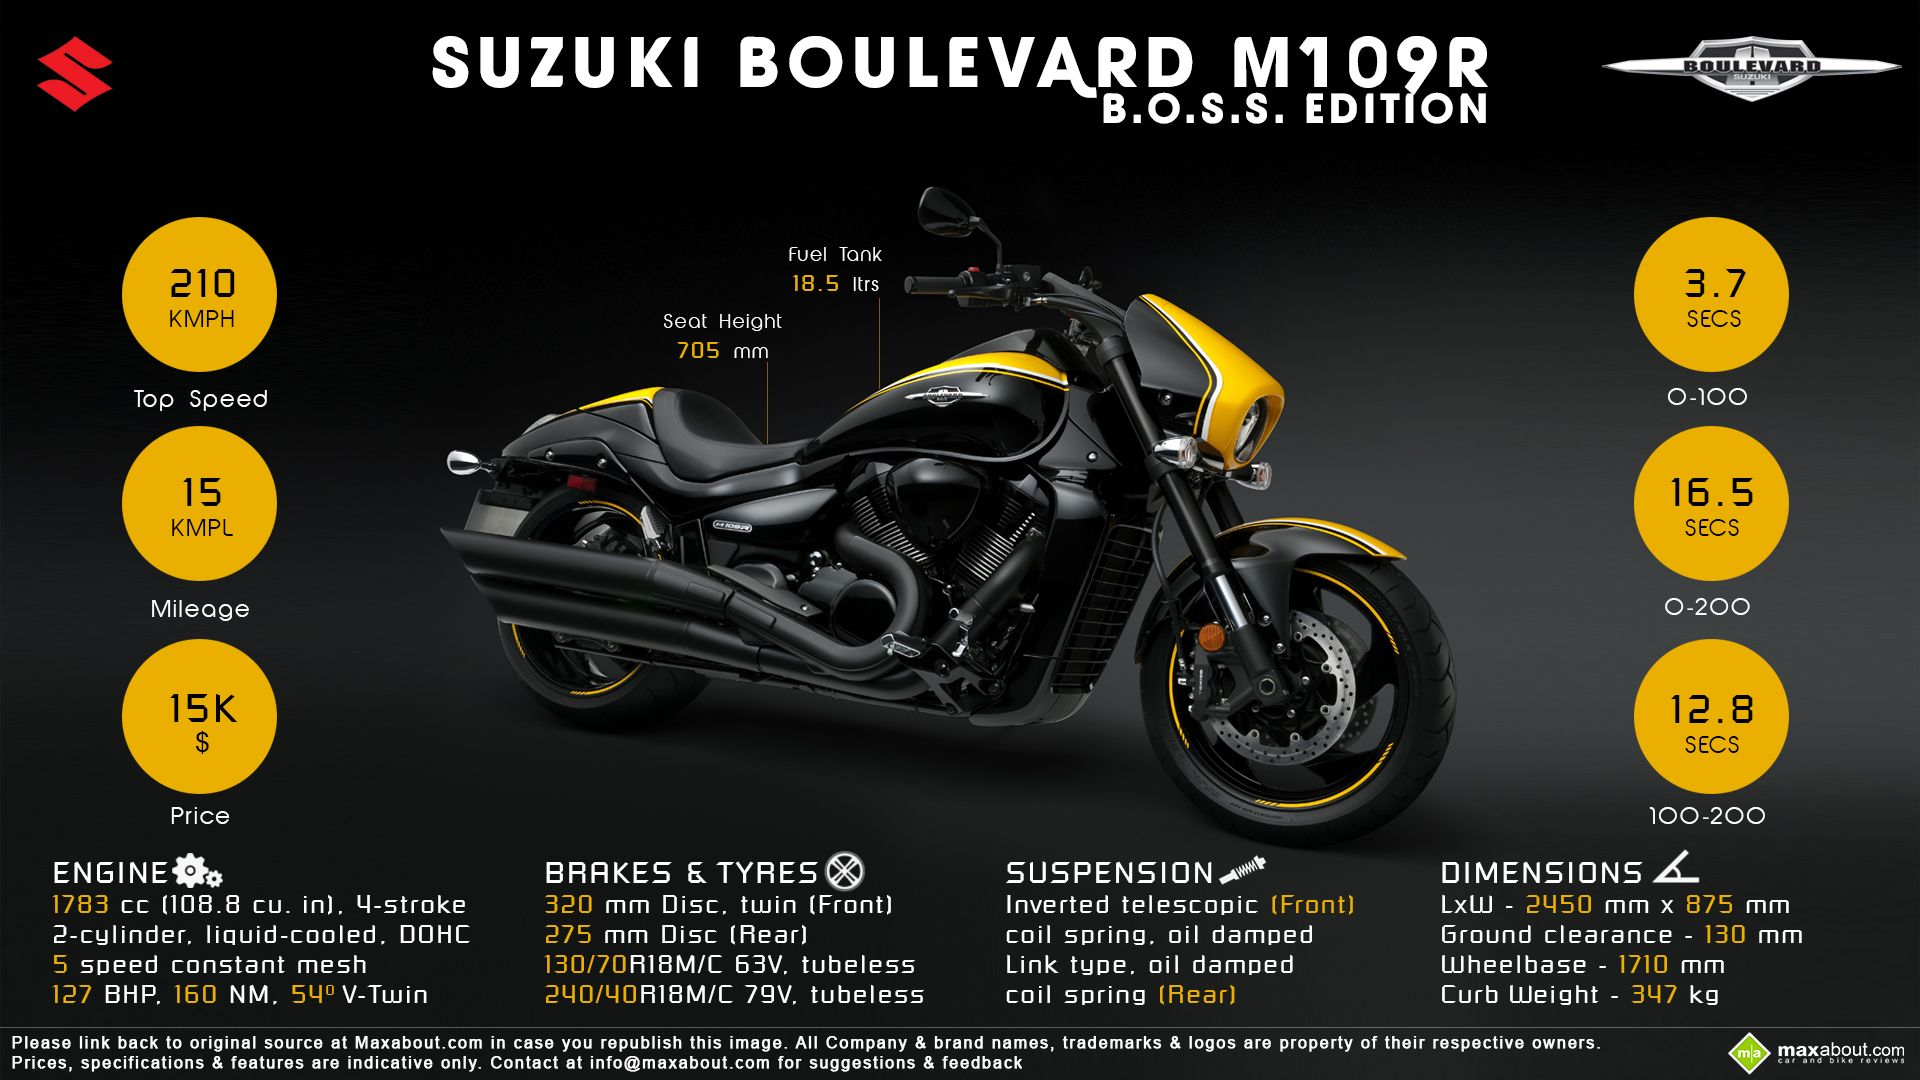 10 things you need to know about suzuki boulevard m109r b o s s edition